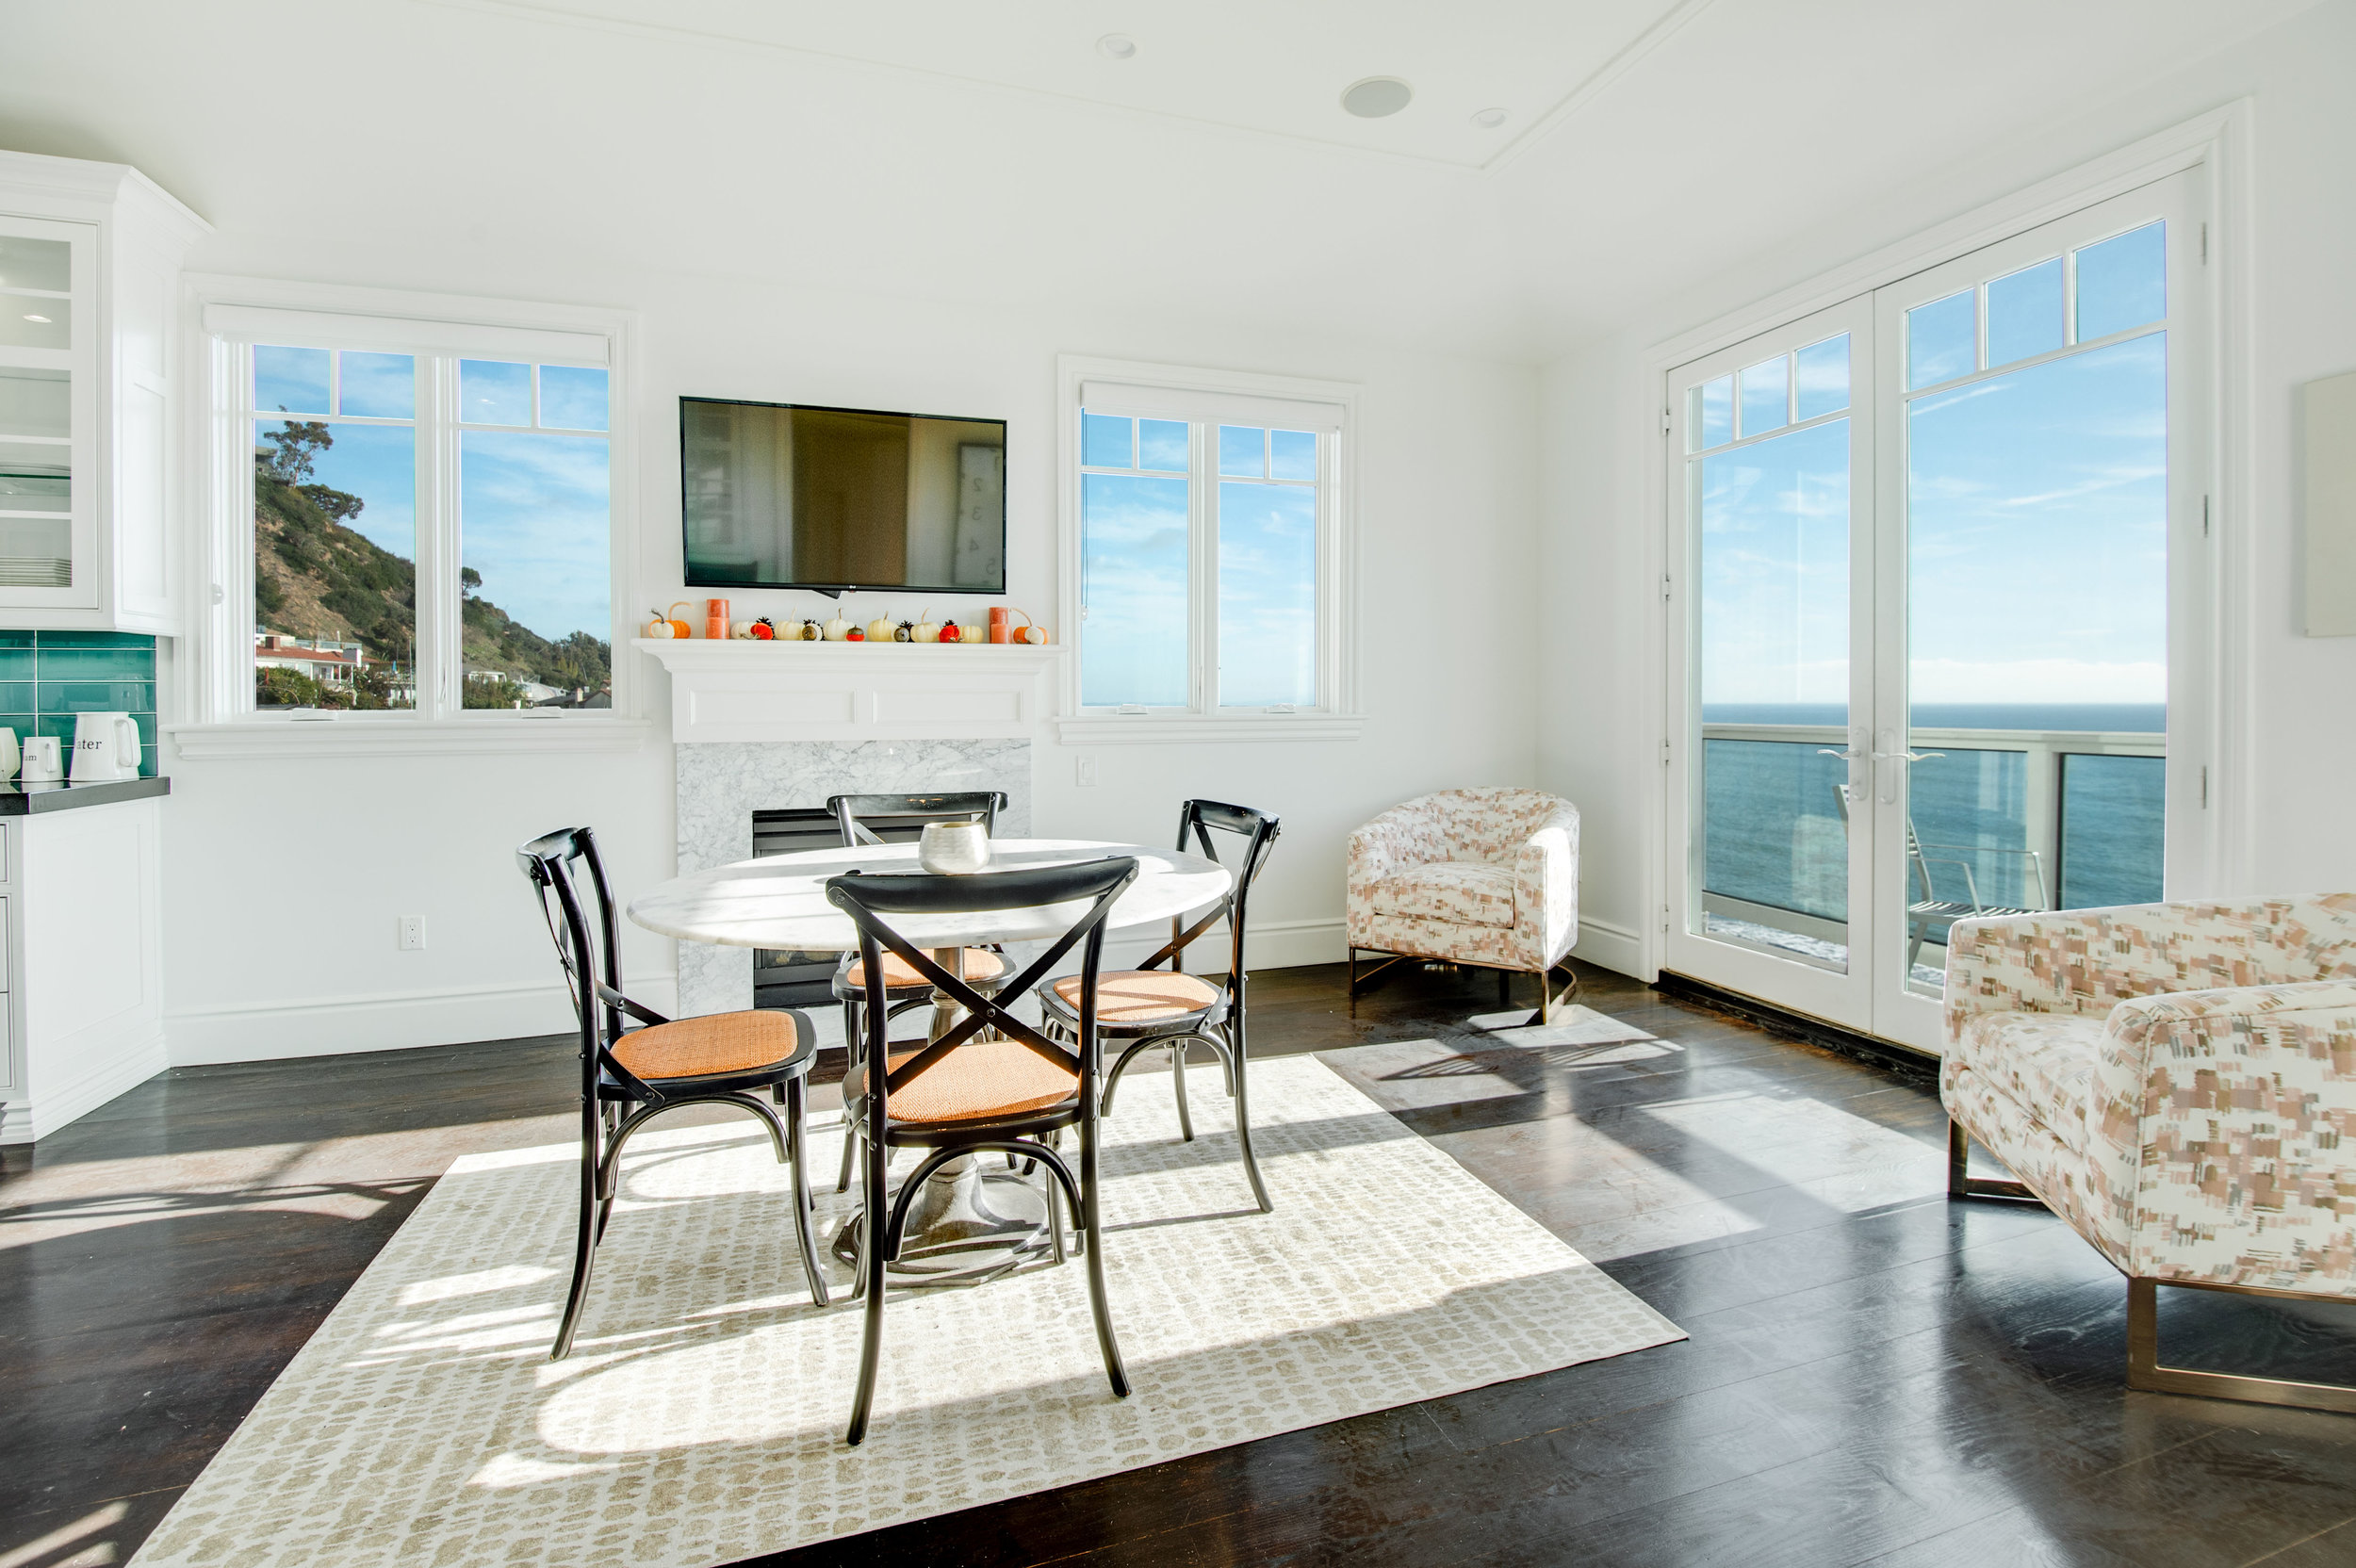 010 Dining Room Kitchen 17819 Castellammare Drive Pacific Palisades For Sale Lease The Malibu Life Team Compass Luxury Real Estate.jpg